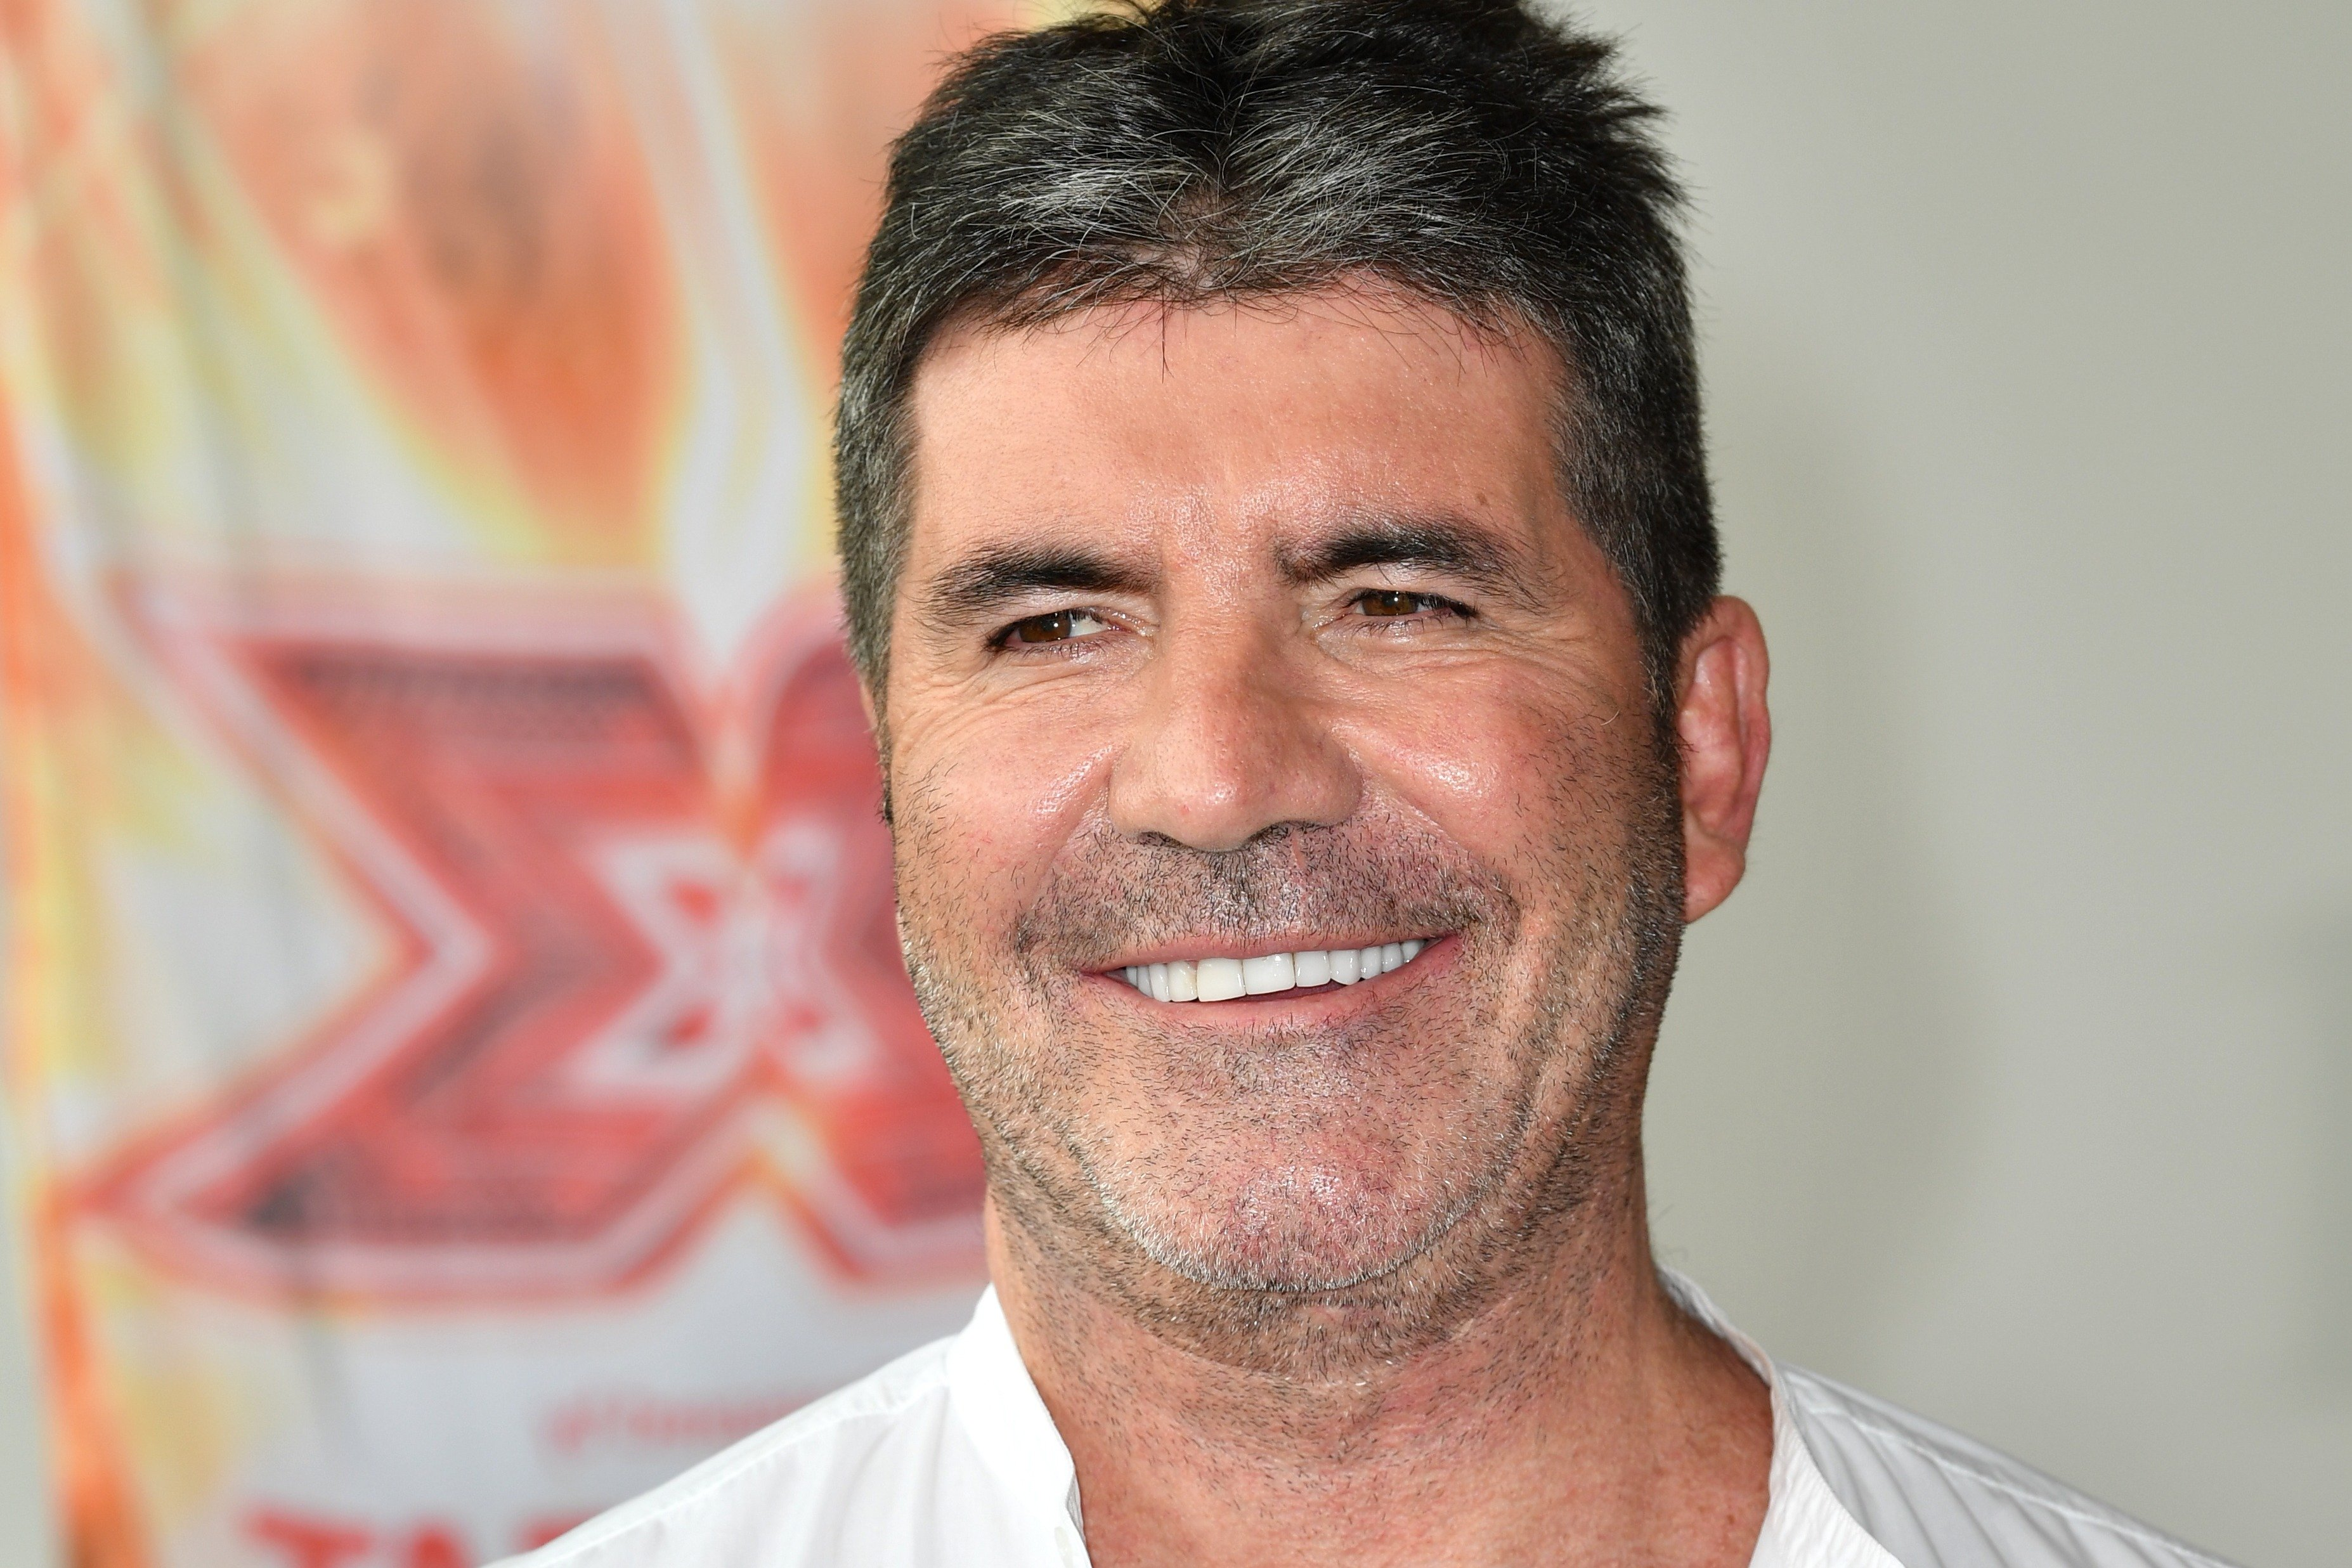 """Simon Cowell attends the """"X Factor"""" auditions in Liverpool, England on June 20, 2017 